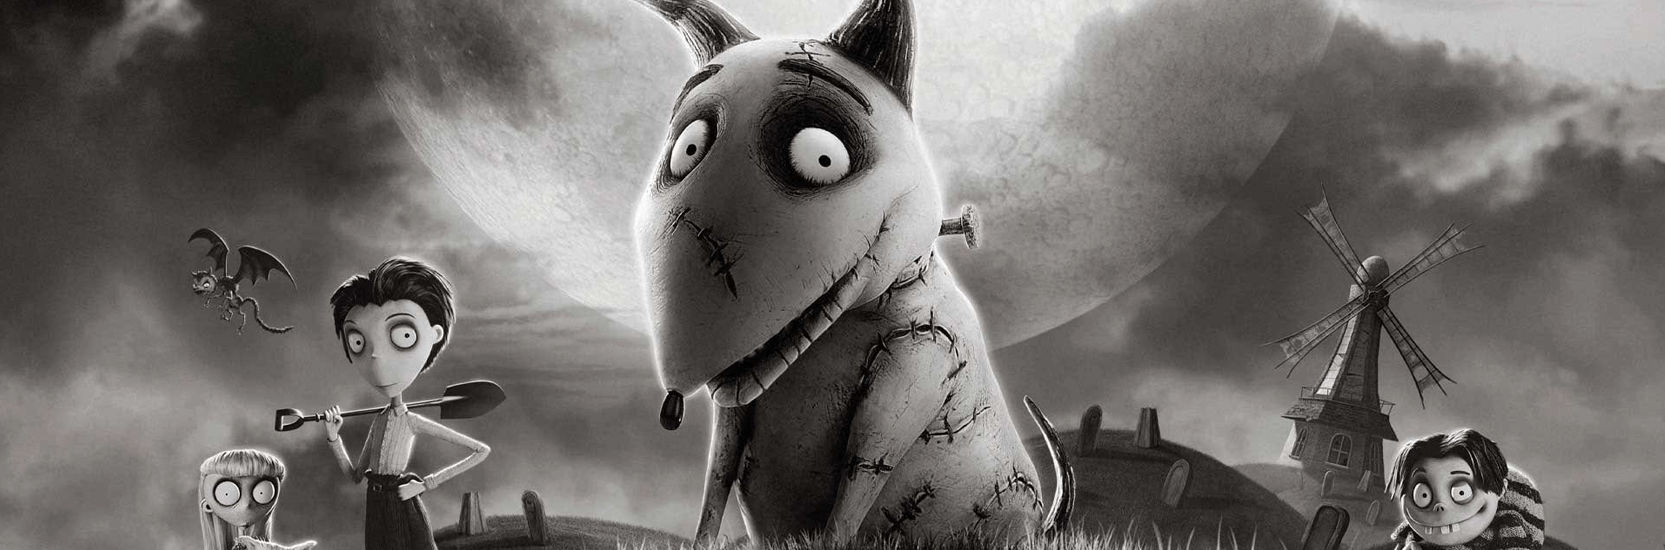 Analyse Frankenweenie Une Ode A L Horreur Little Big Animation